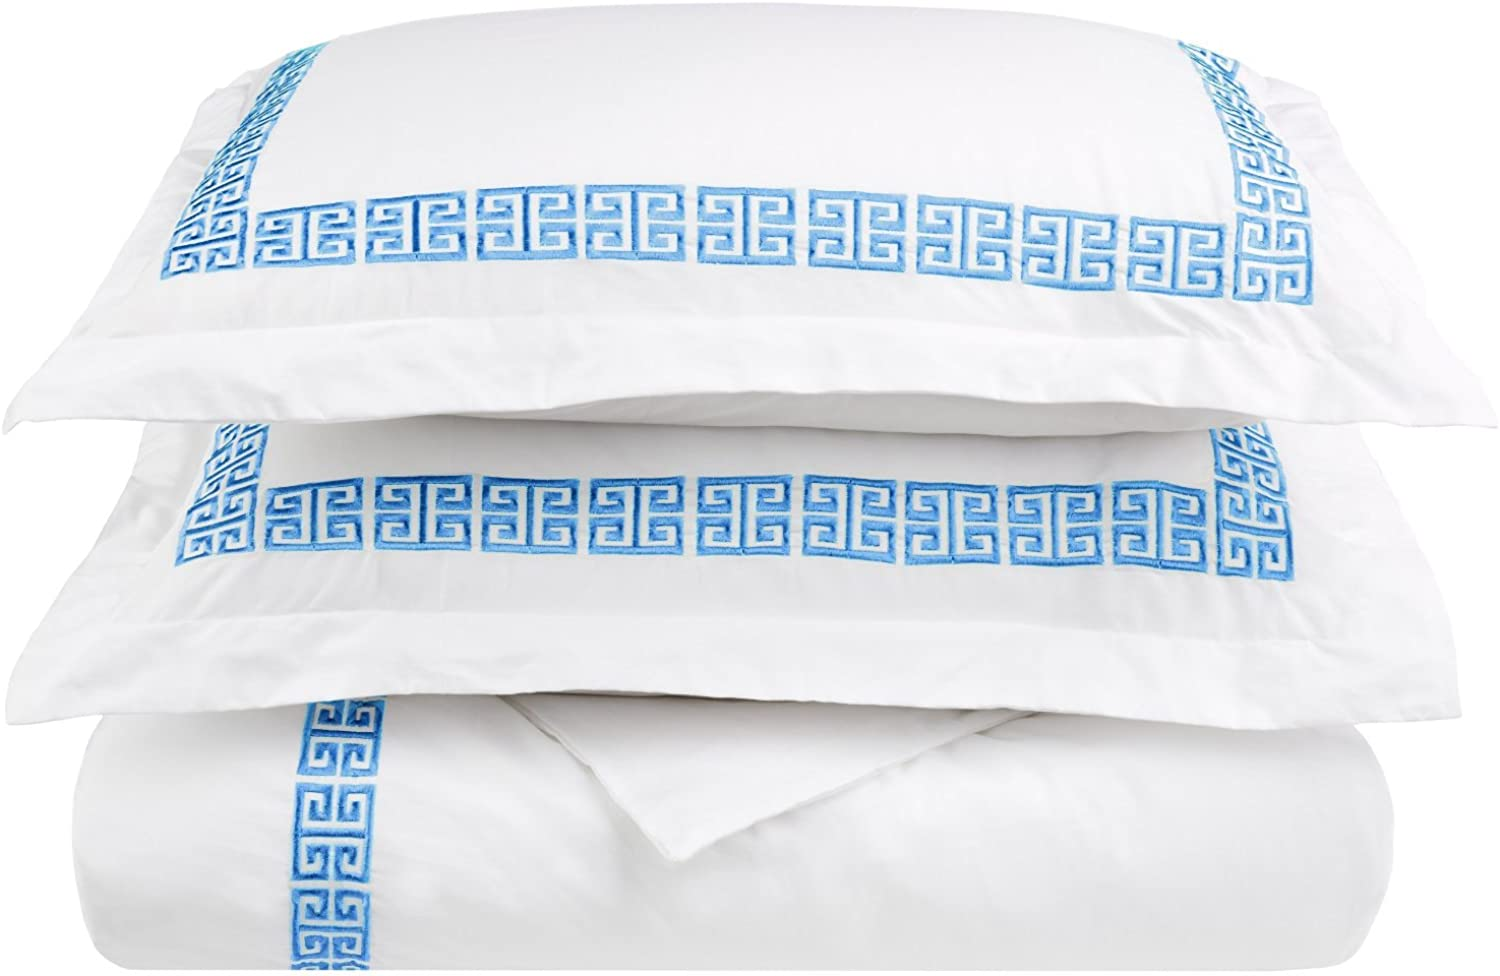 100% Cotton Greek Key Embroidery, 3-Piece Full  Queen Kendell Duvet Cover Set, White  Light bluee